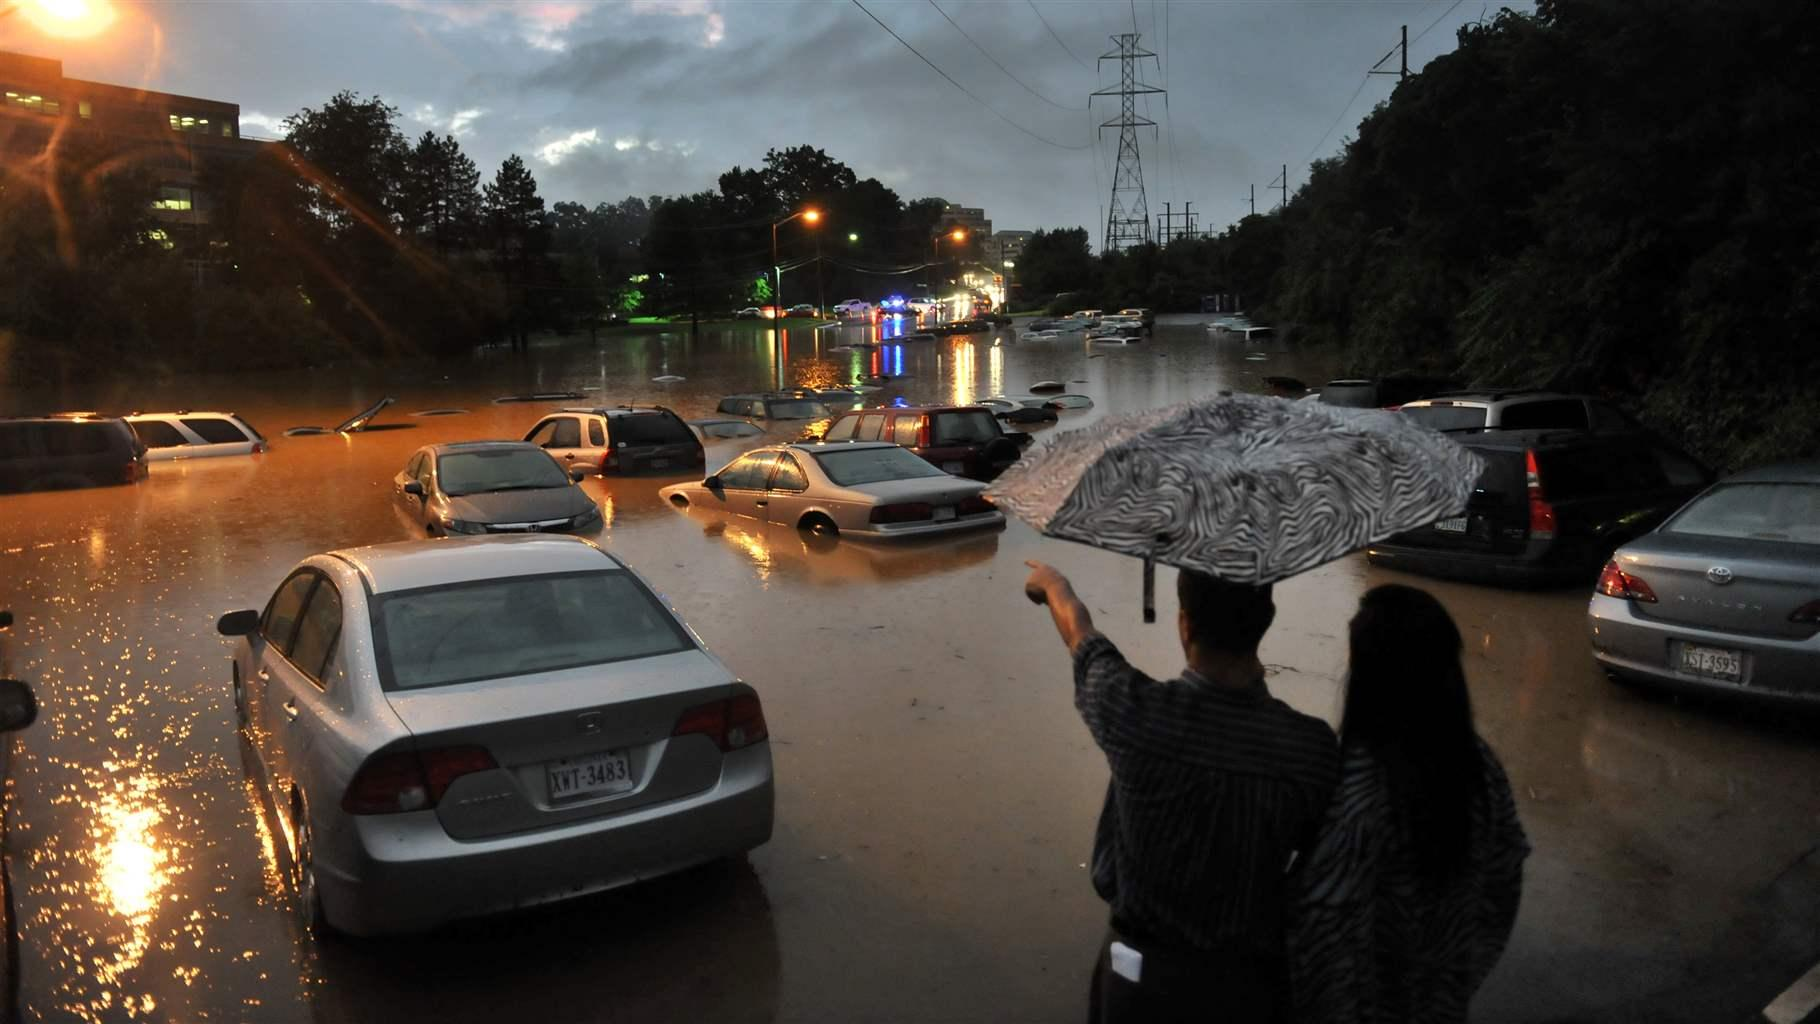 Flooding in Reston VA